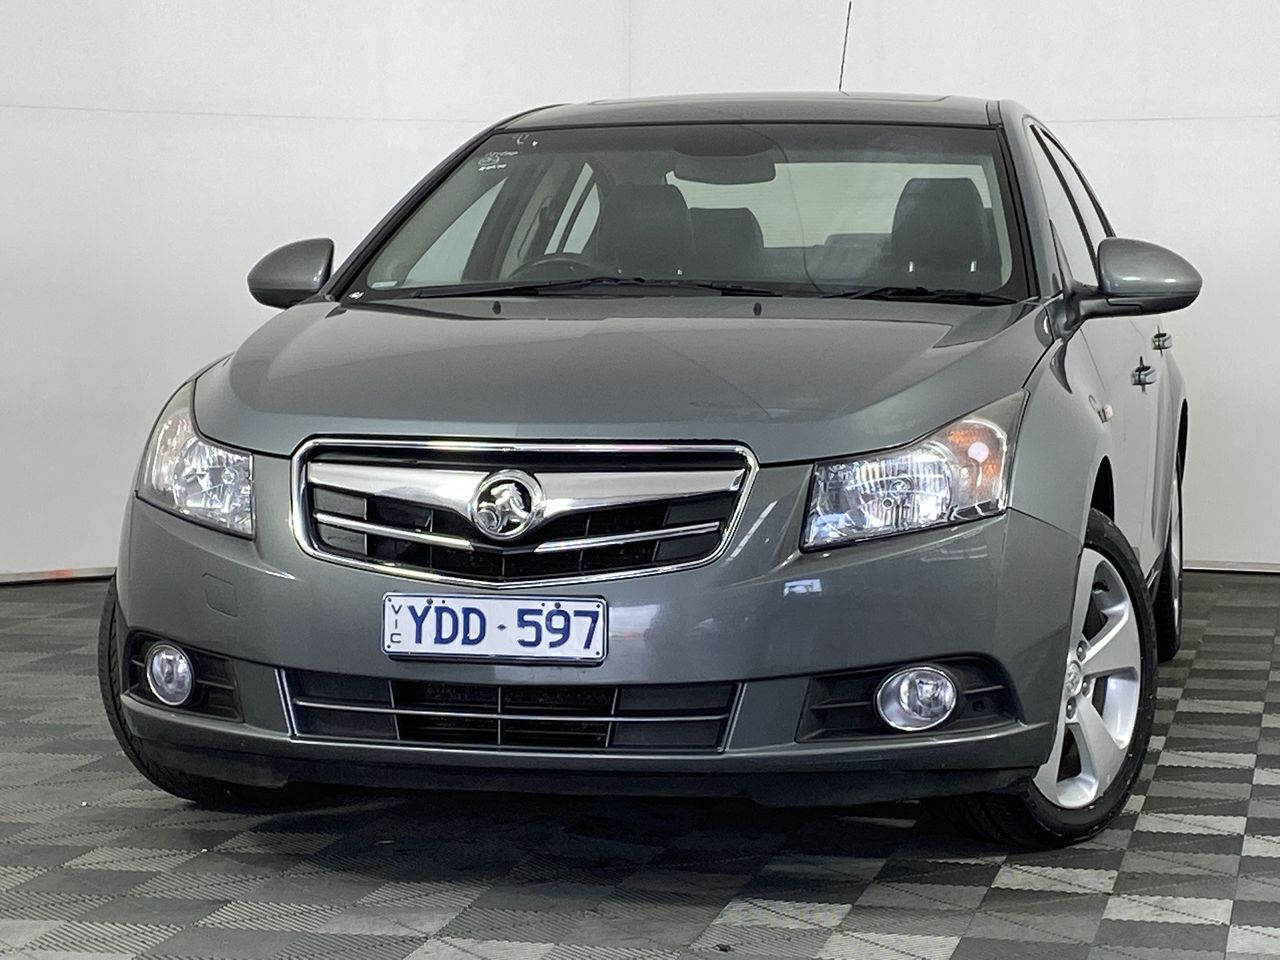 2010 Holden Cruze CDX JG Turbo Diesel Manual Sedan